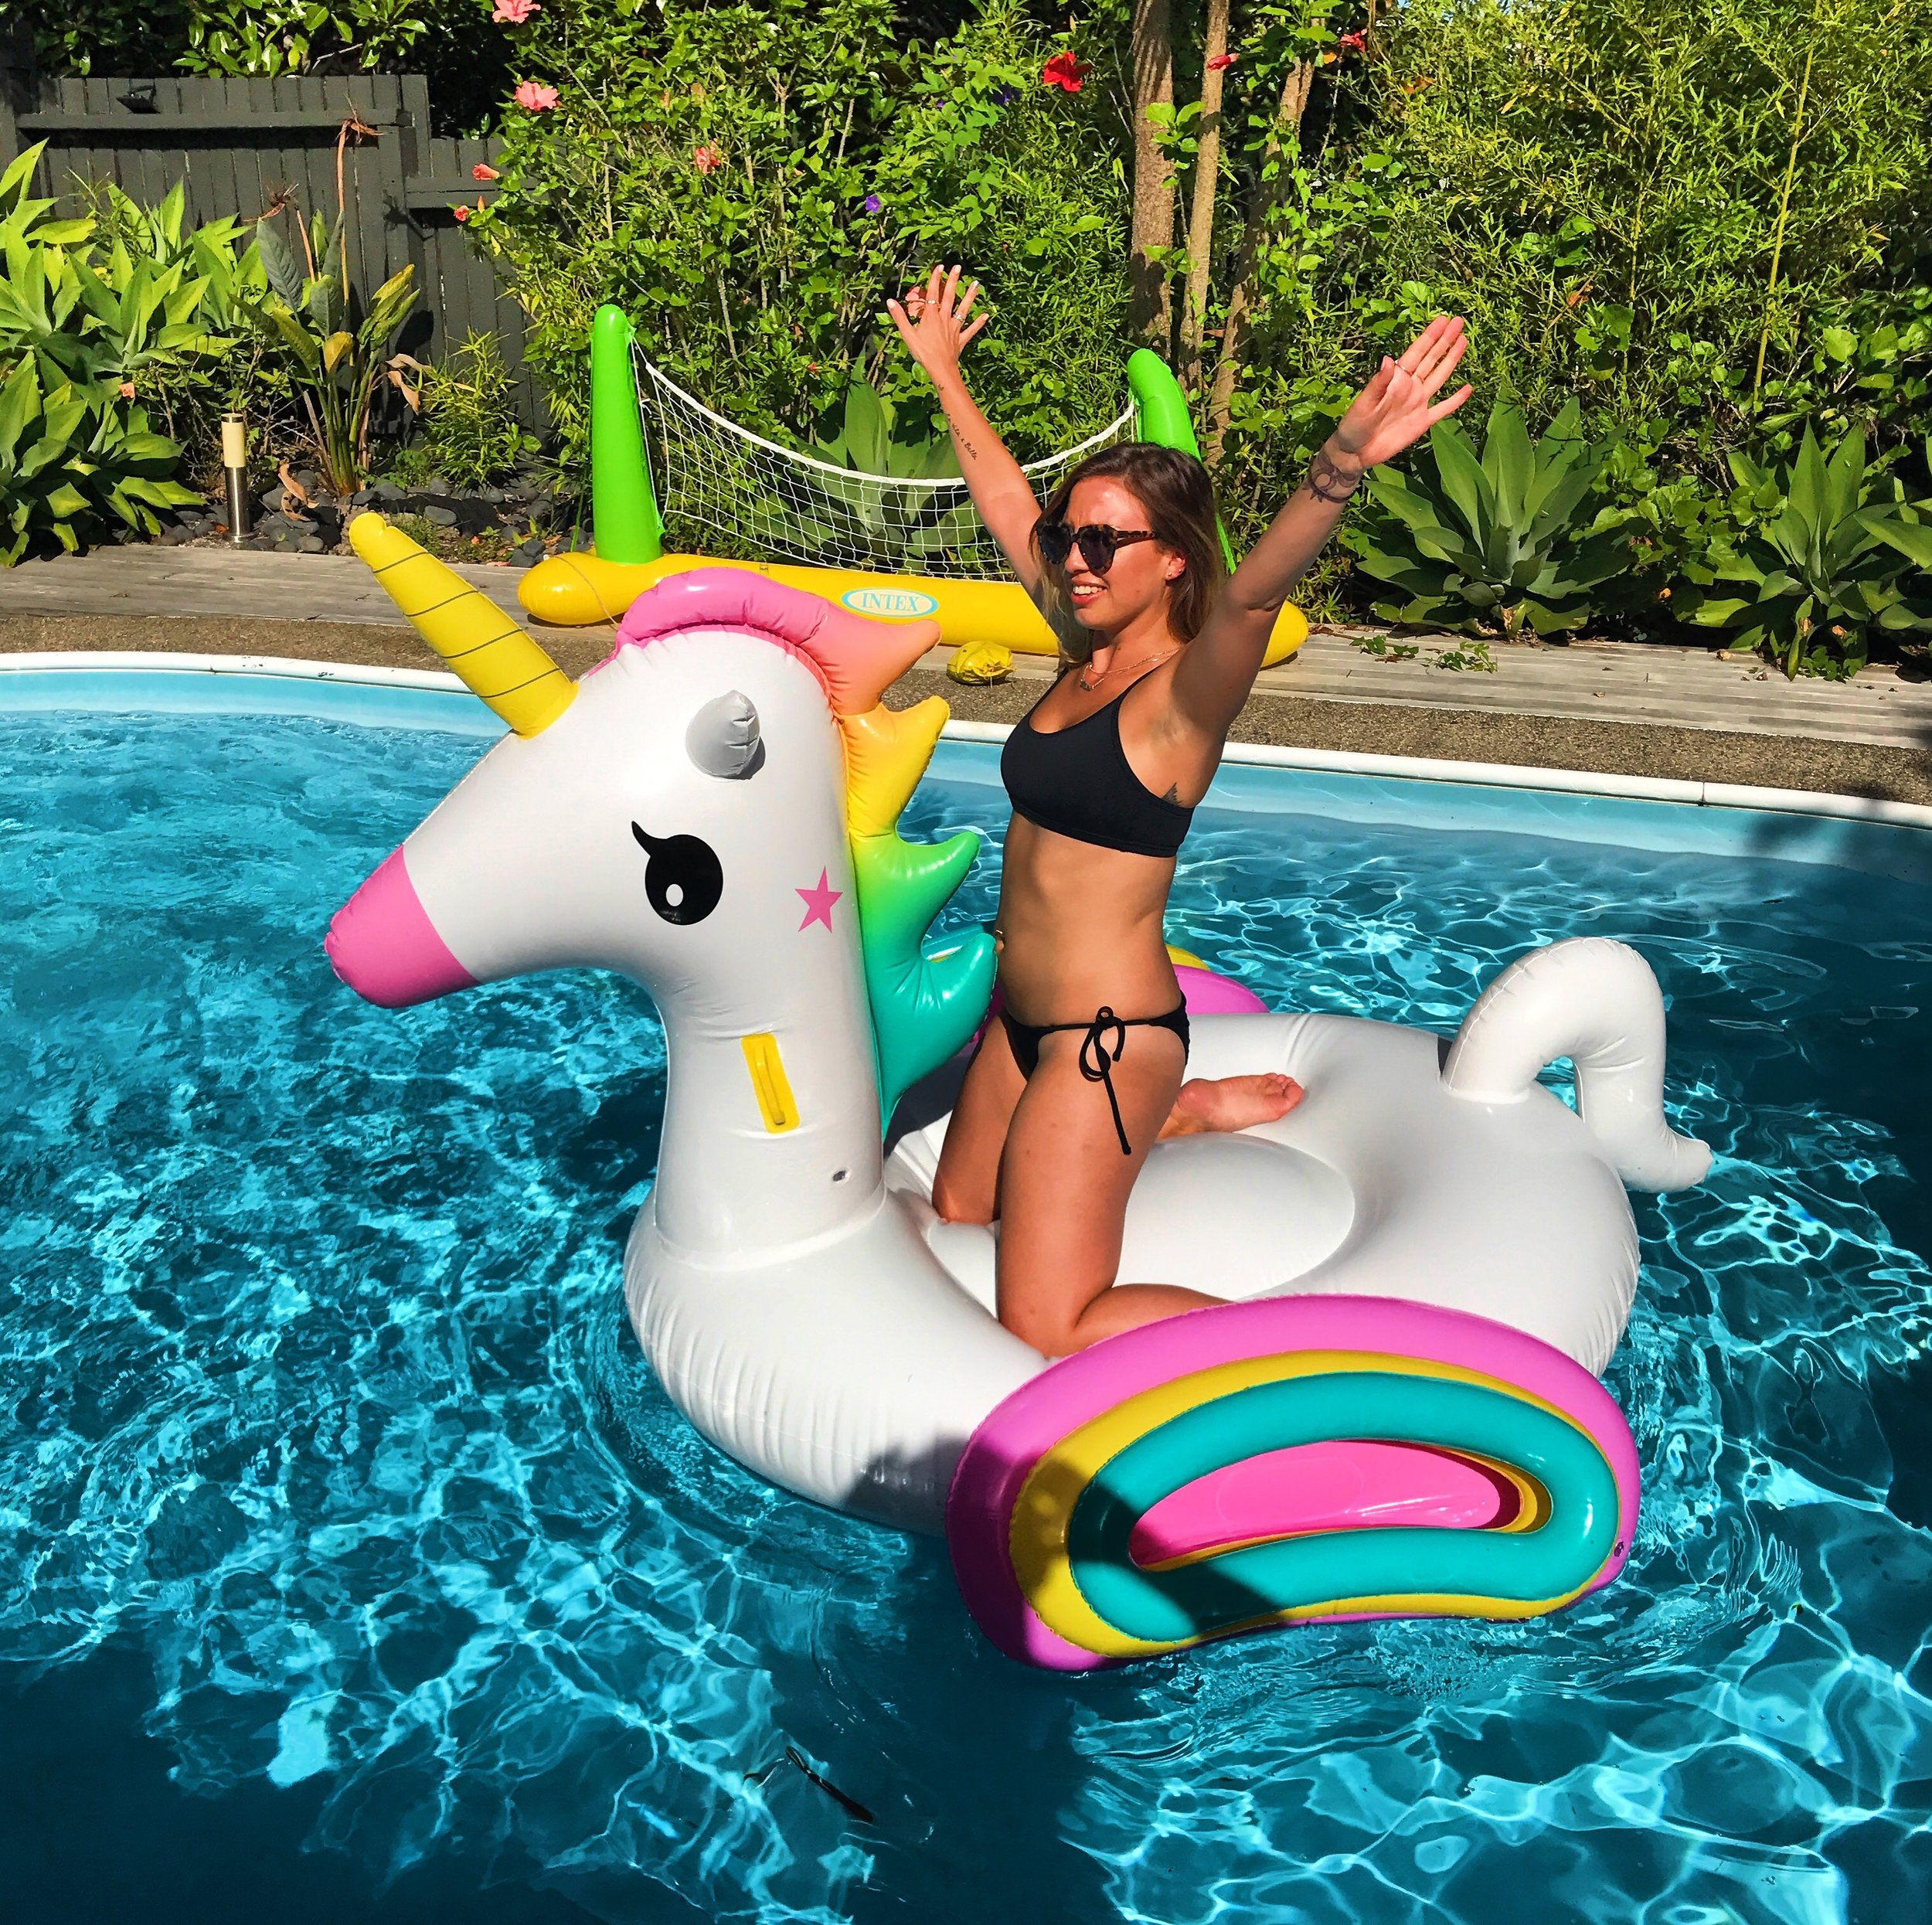 Nothing to see here, just a basic b living her best life on her unicorn mate (pretty sure I was hungover af #reality)